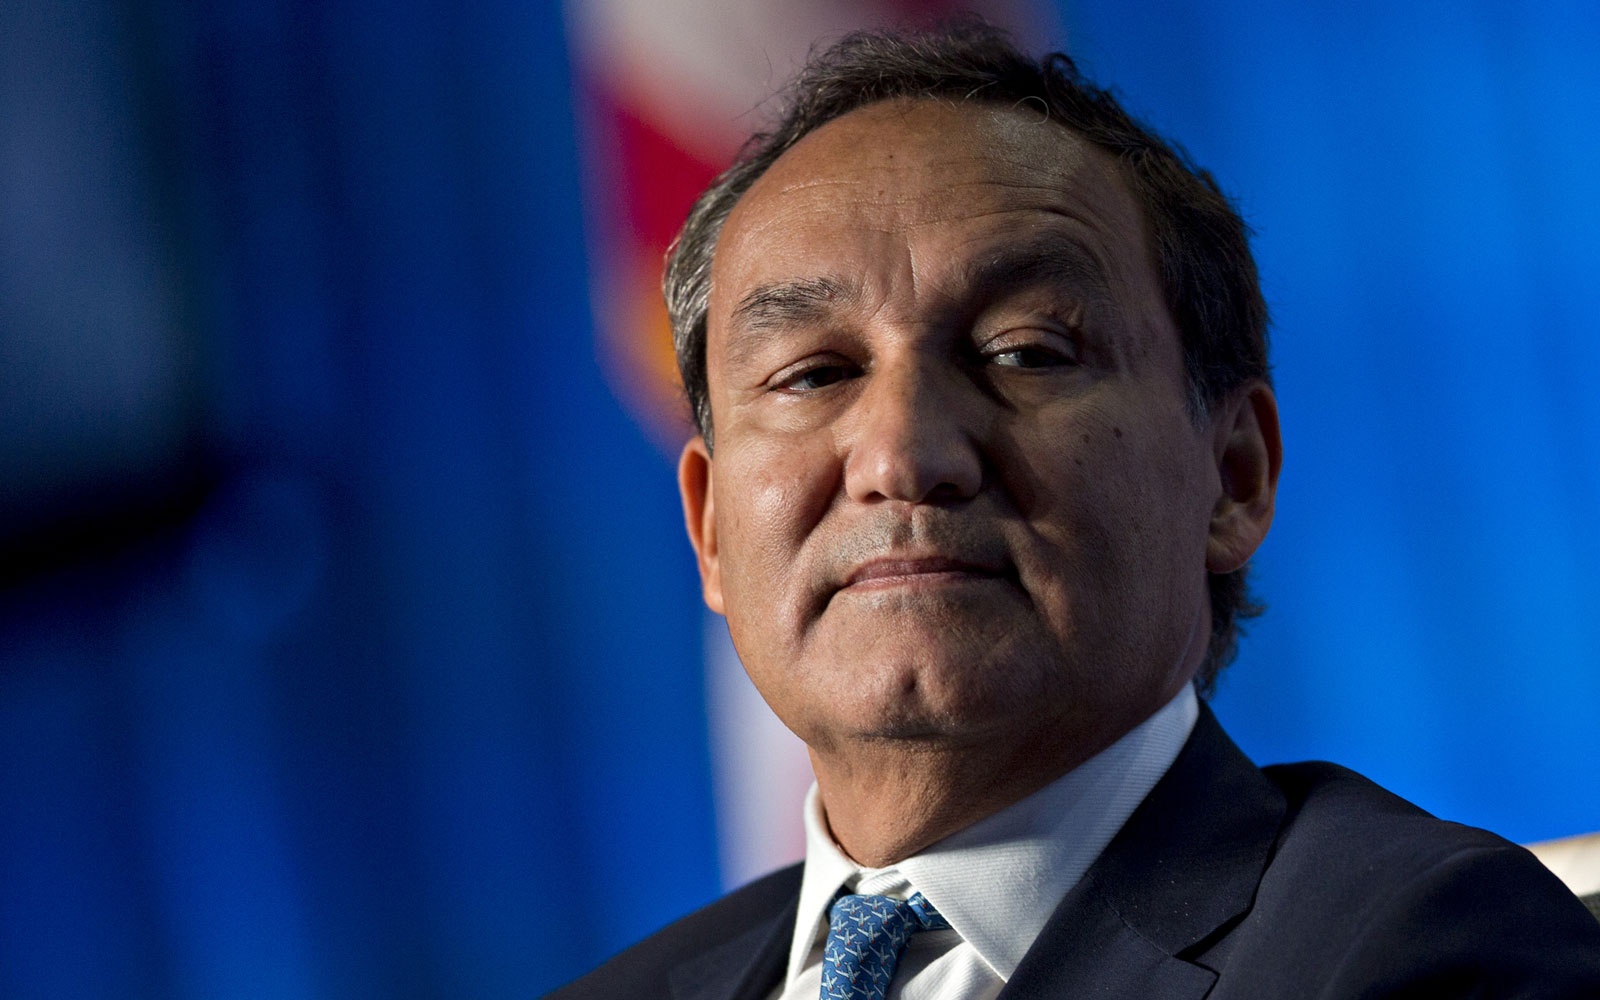 United Announces CEO Oscar Munoz Will Not Be Chairman Next Year